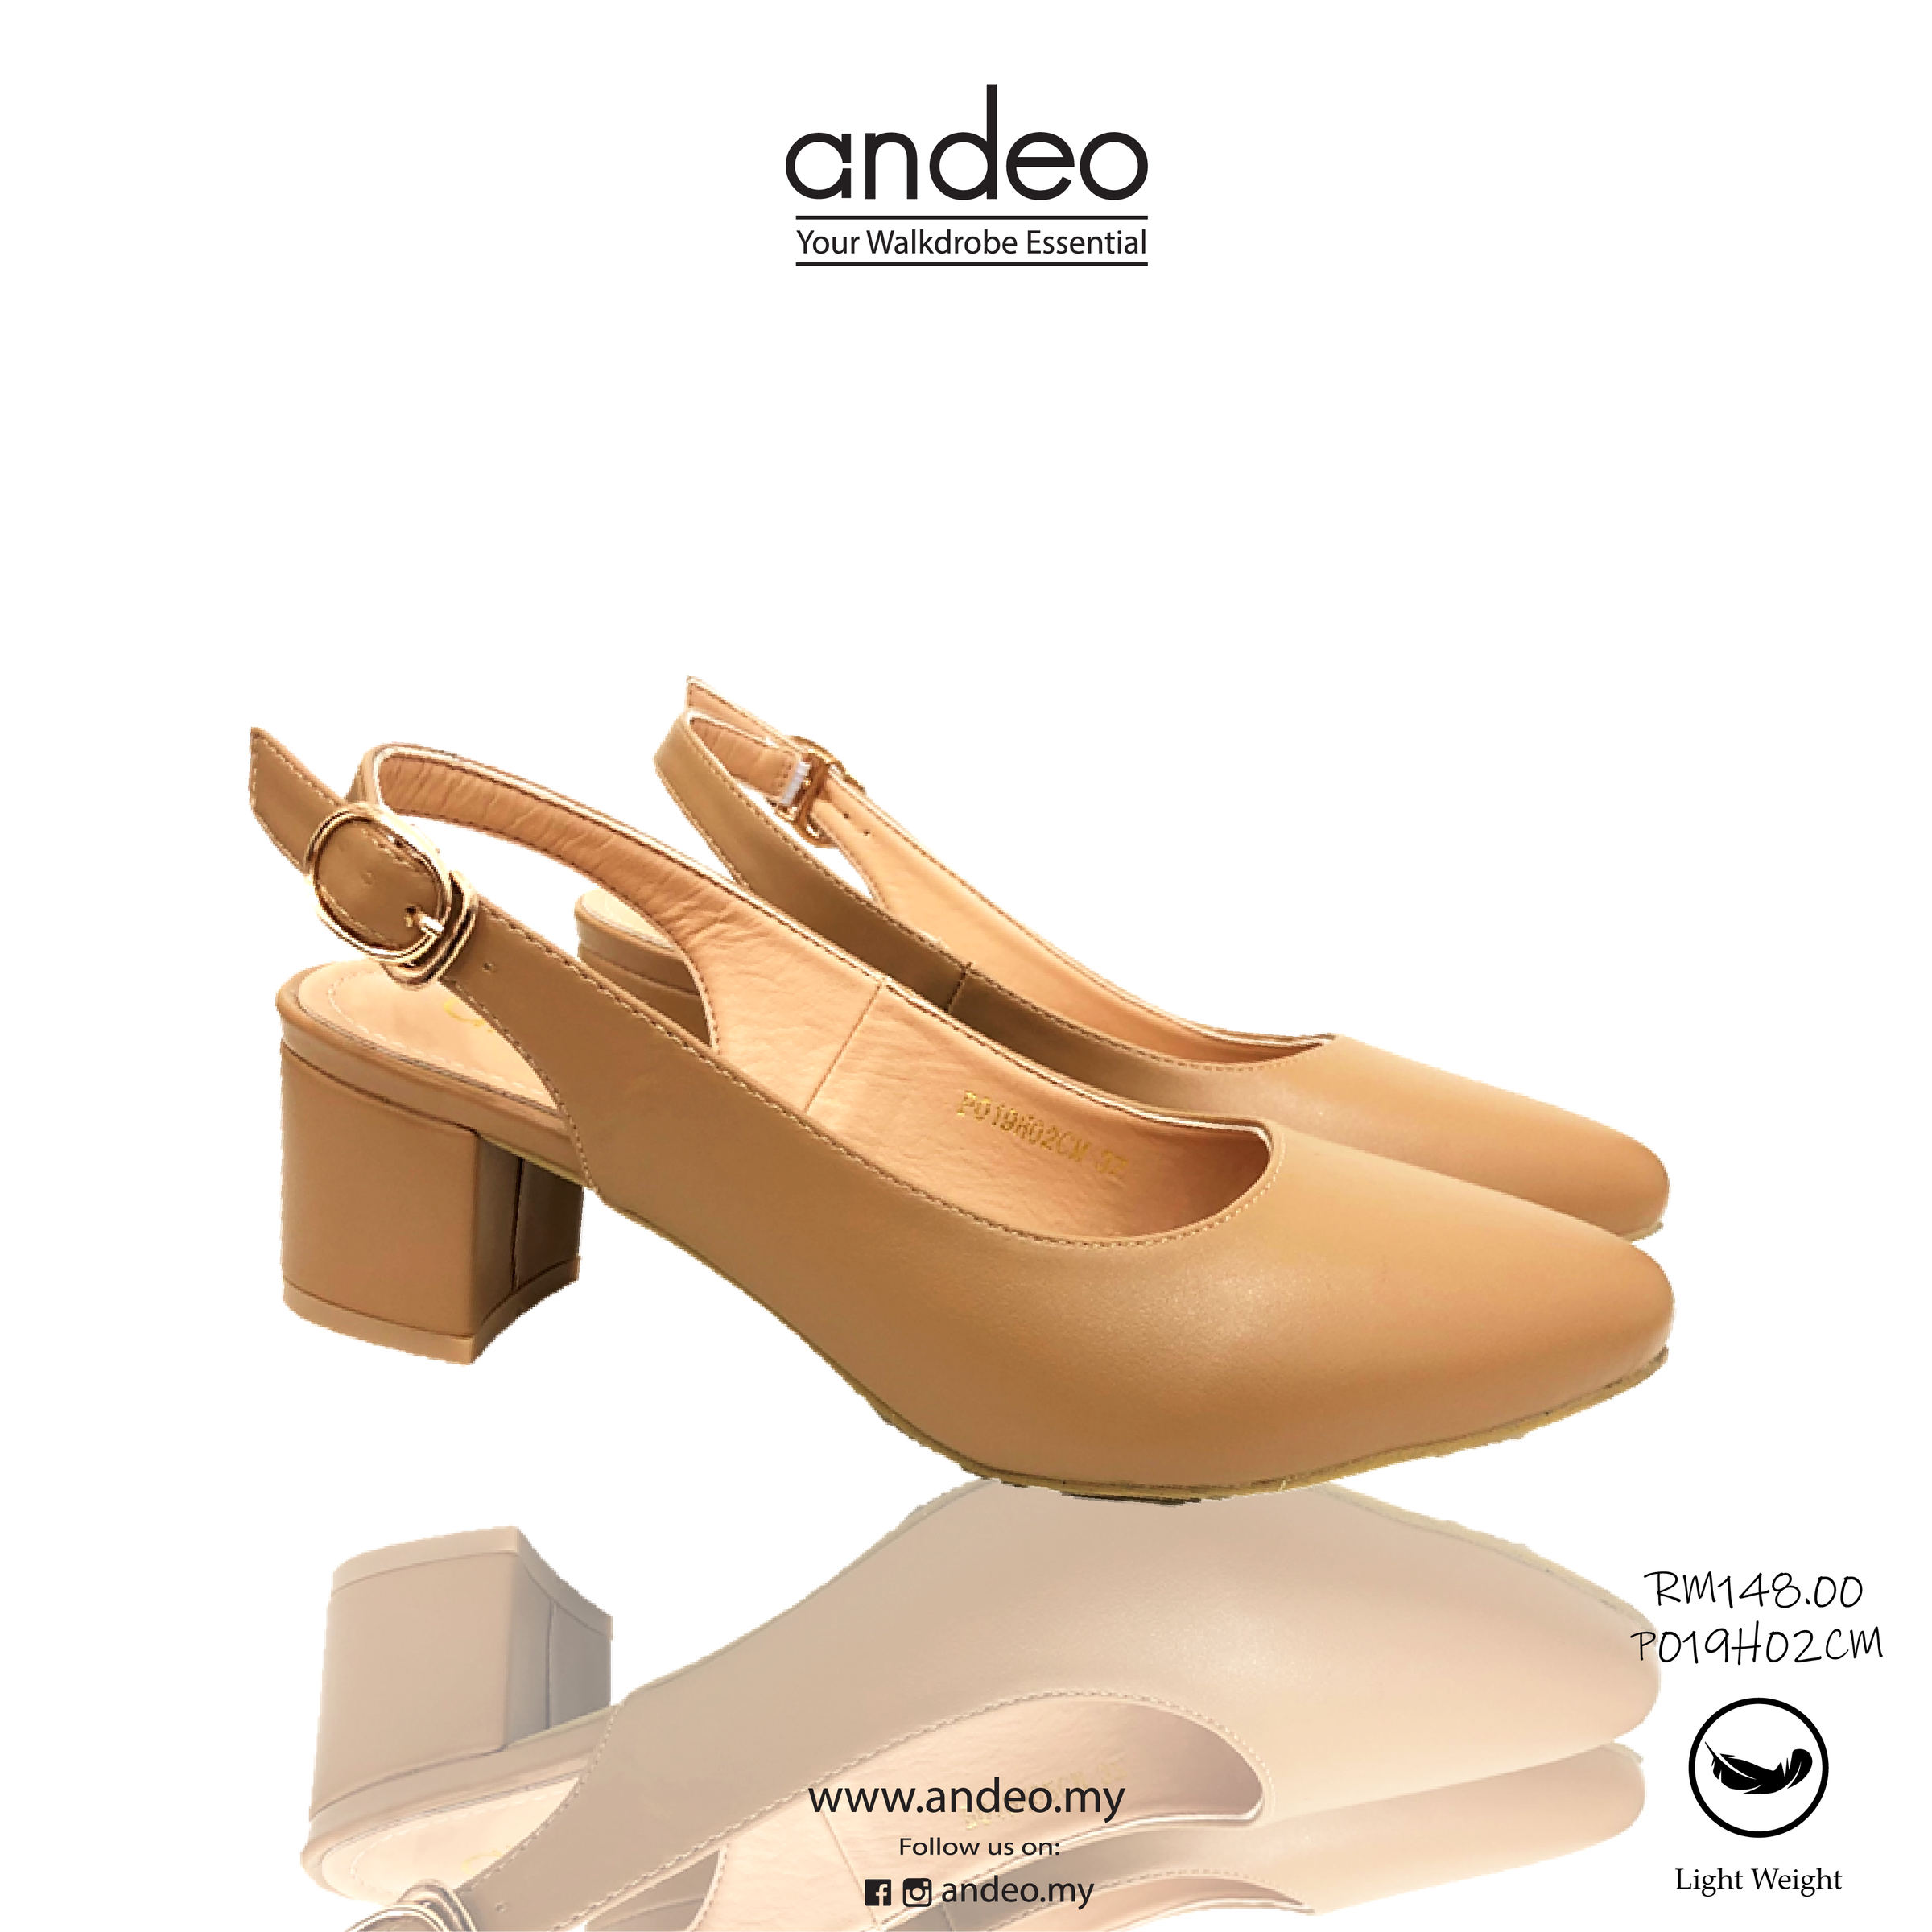 ANDEO FB PRODUCT P019H02-01.png